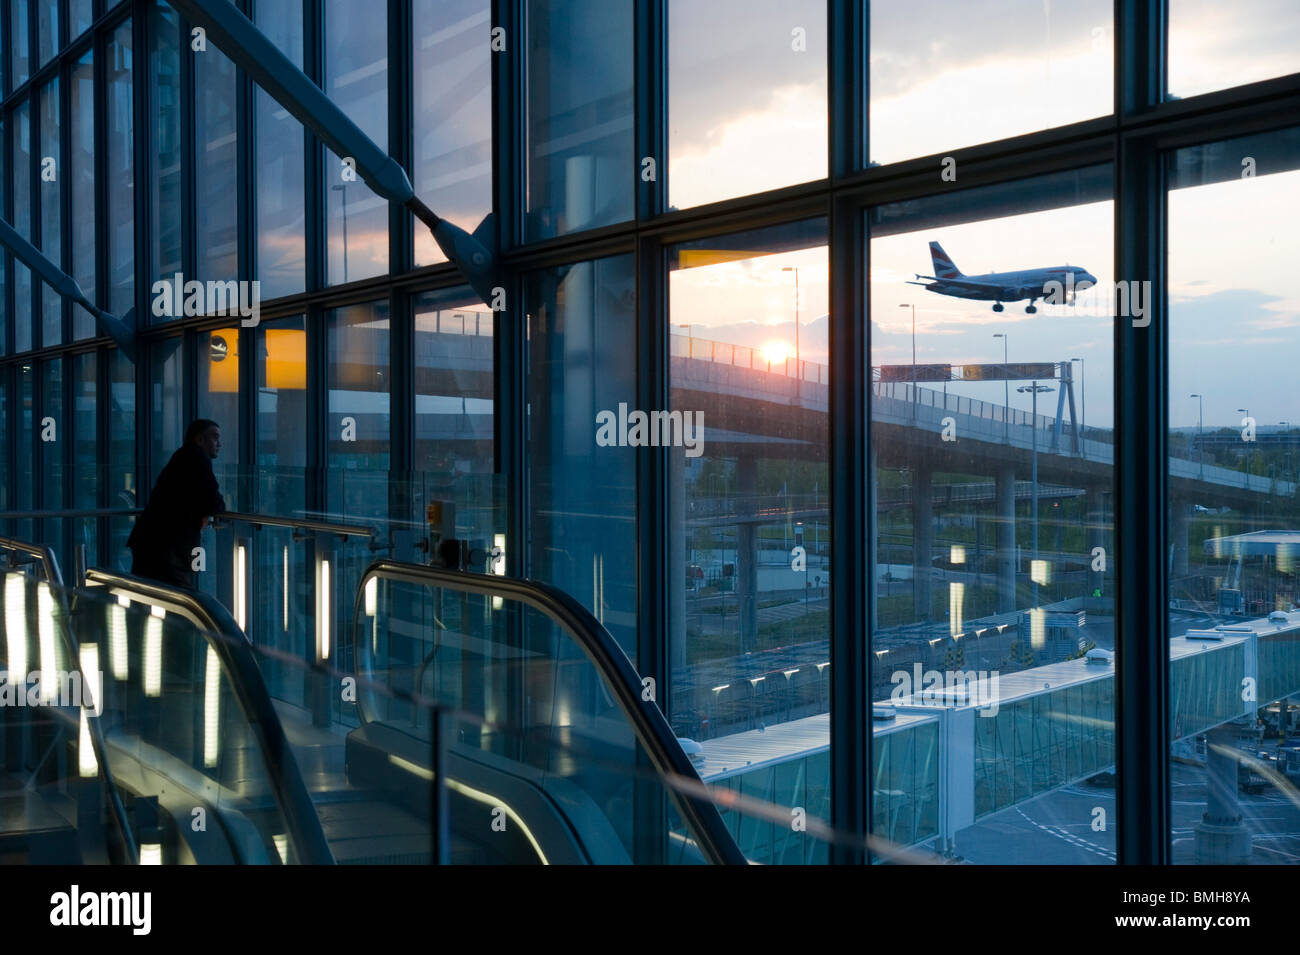 London Heathrow Airport Terminal 5 - departure gate at sunset - BA crew member watches an evening BA departure - Stock Image